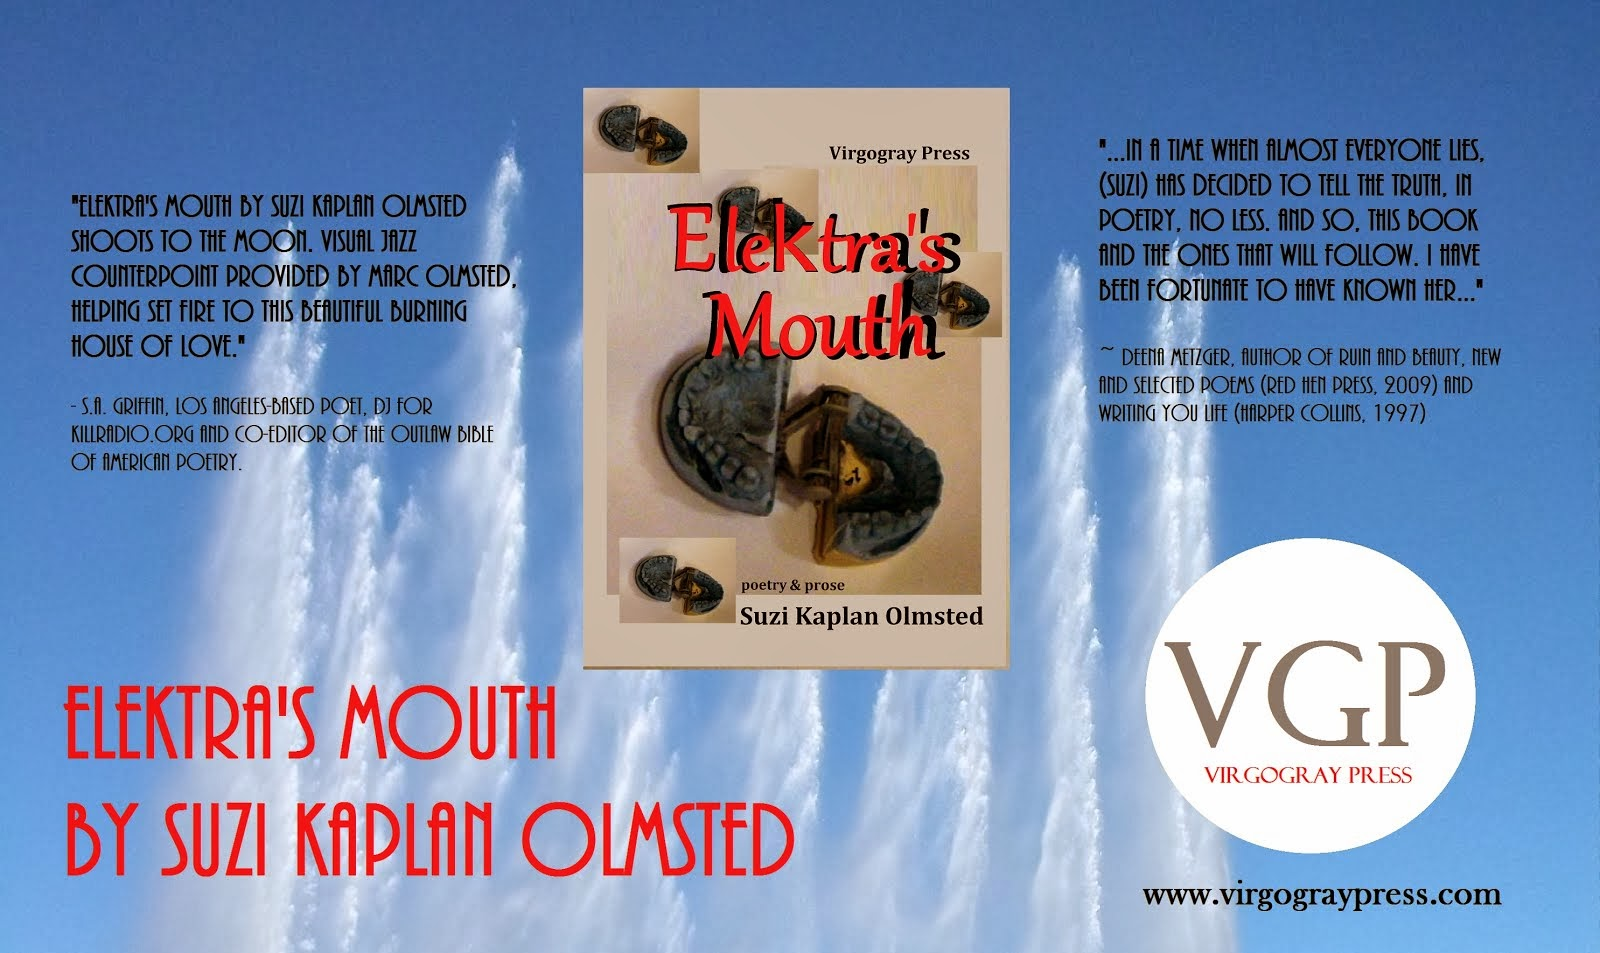 Elektra's Mouth by Suzi Kaplan Olmsted